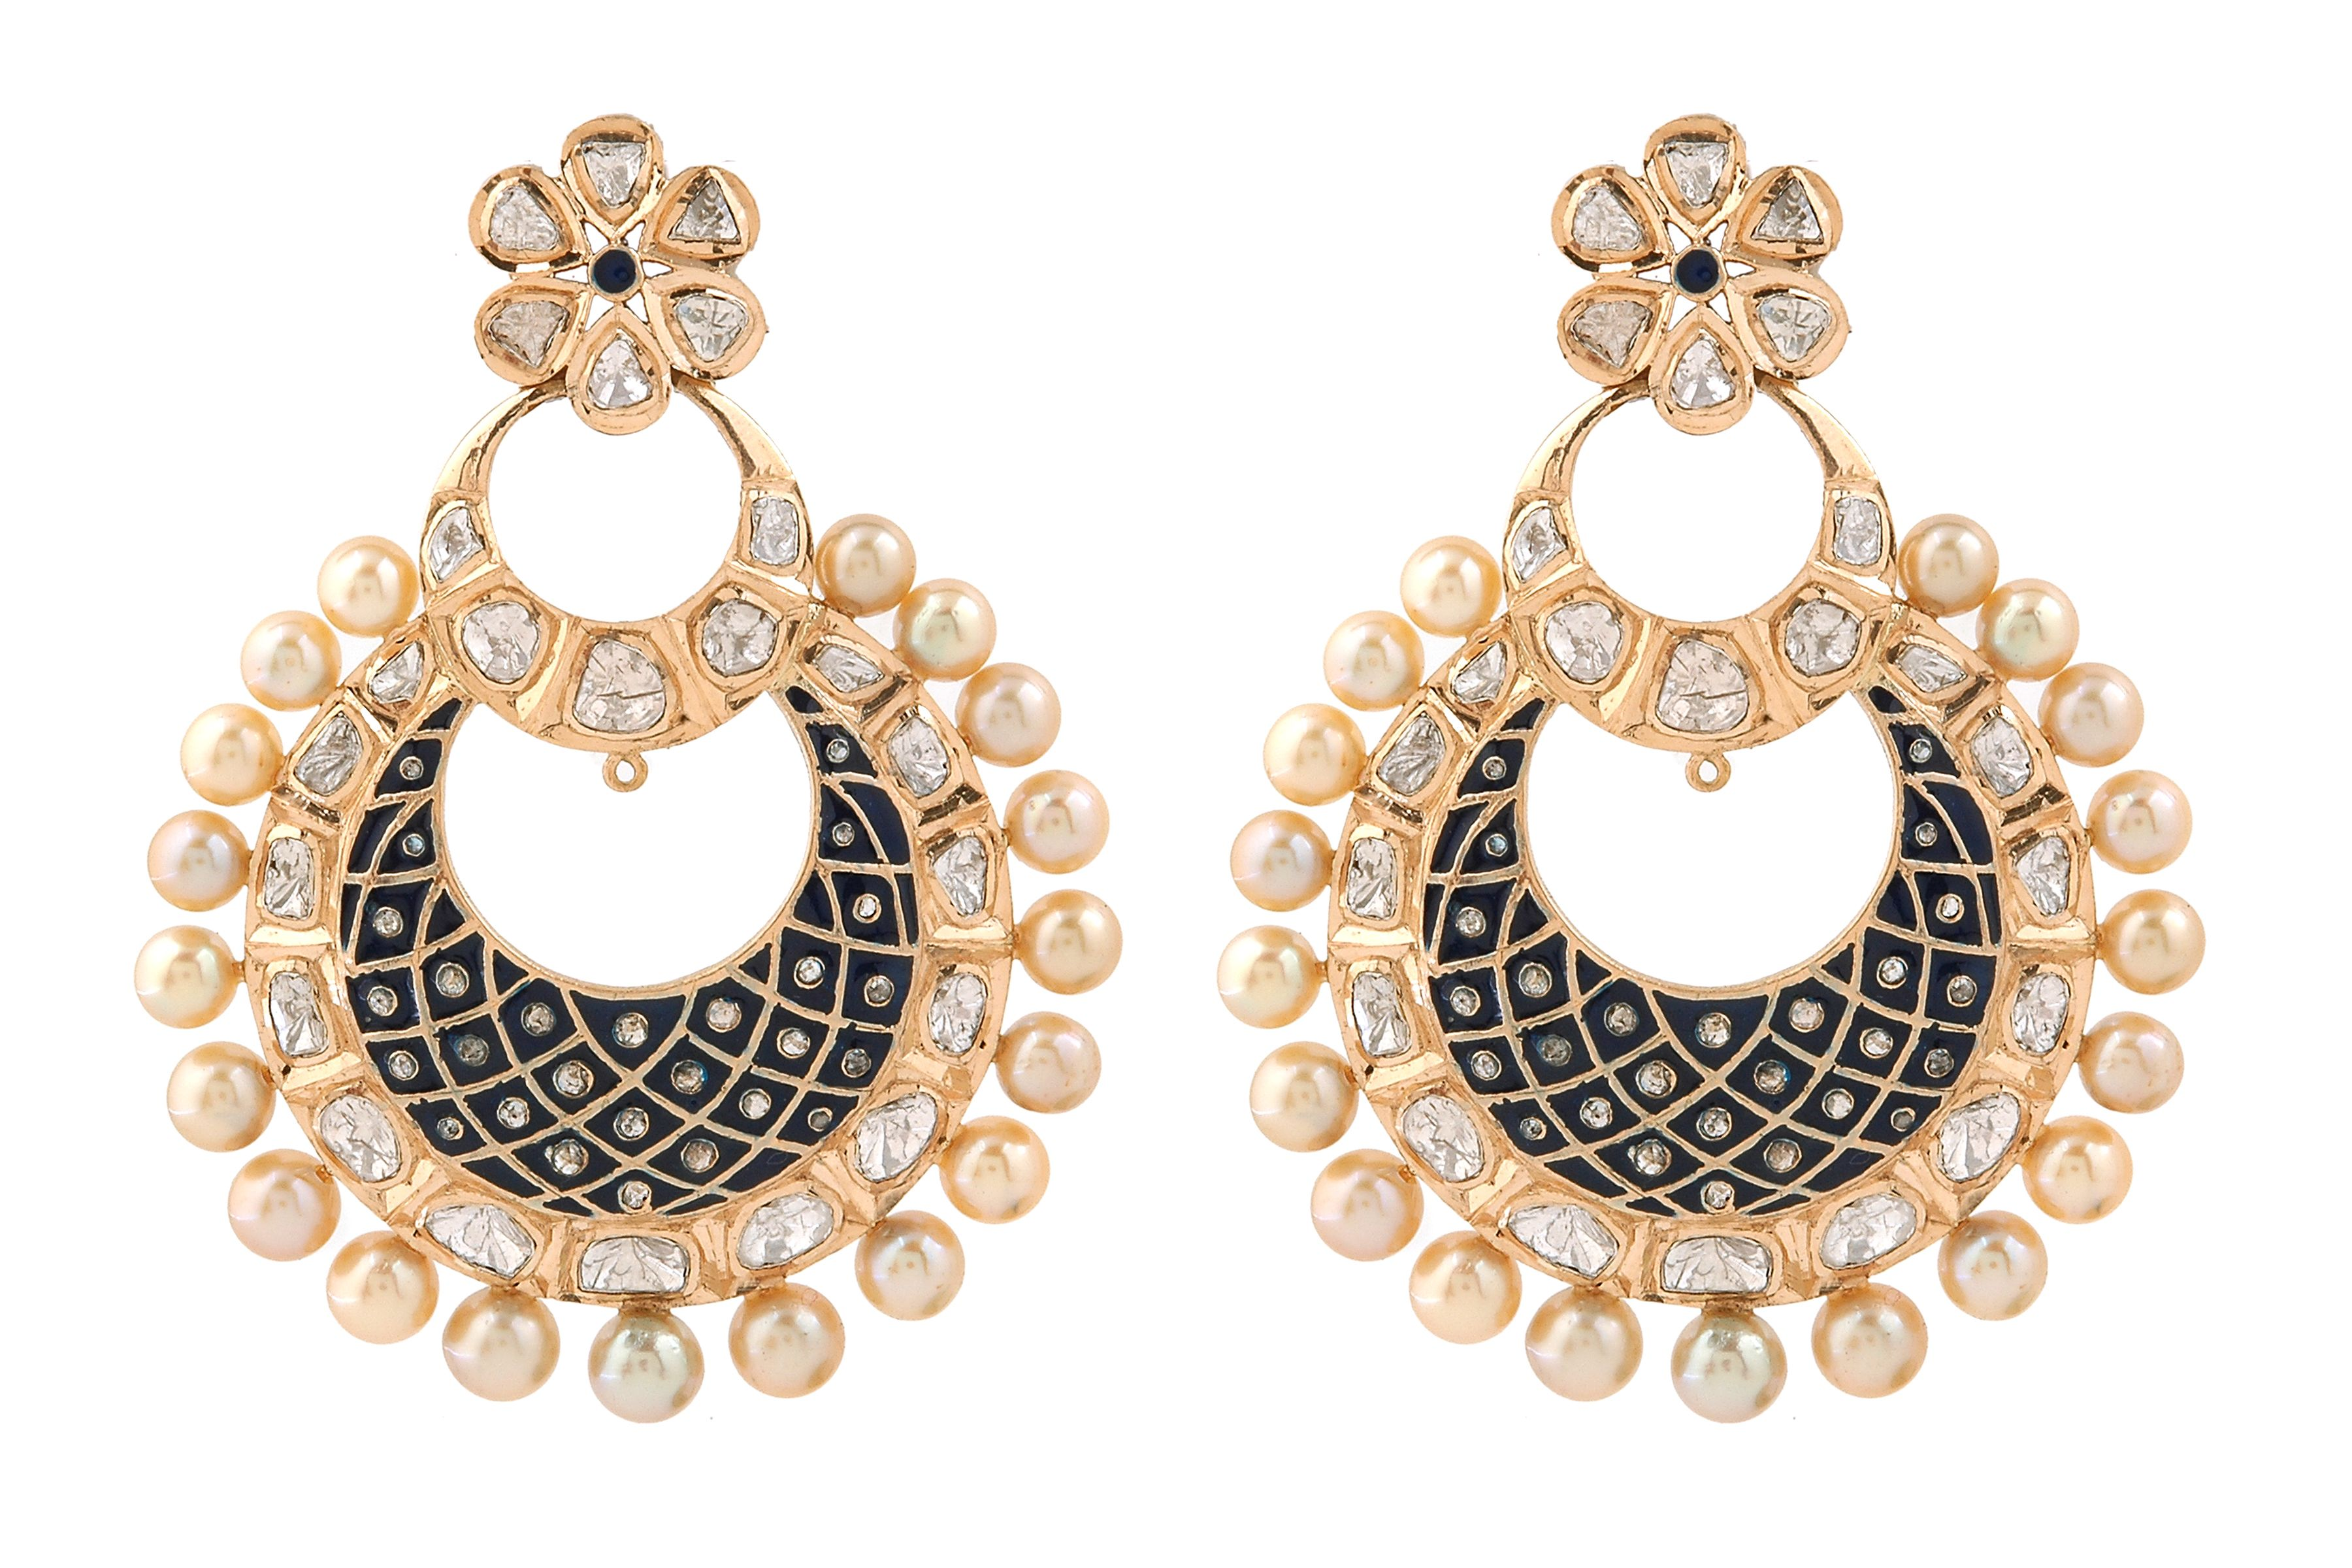 18krt Gold Earring With Polki & Diamonds. www.jeyporecreations.com